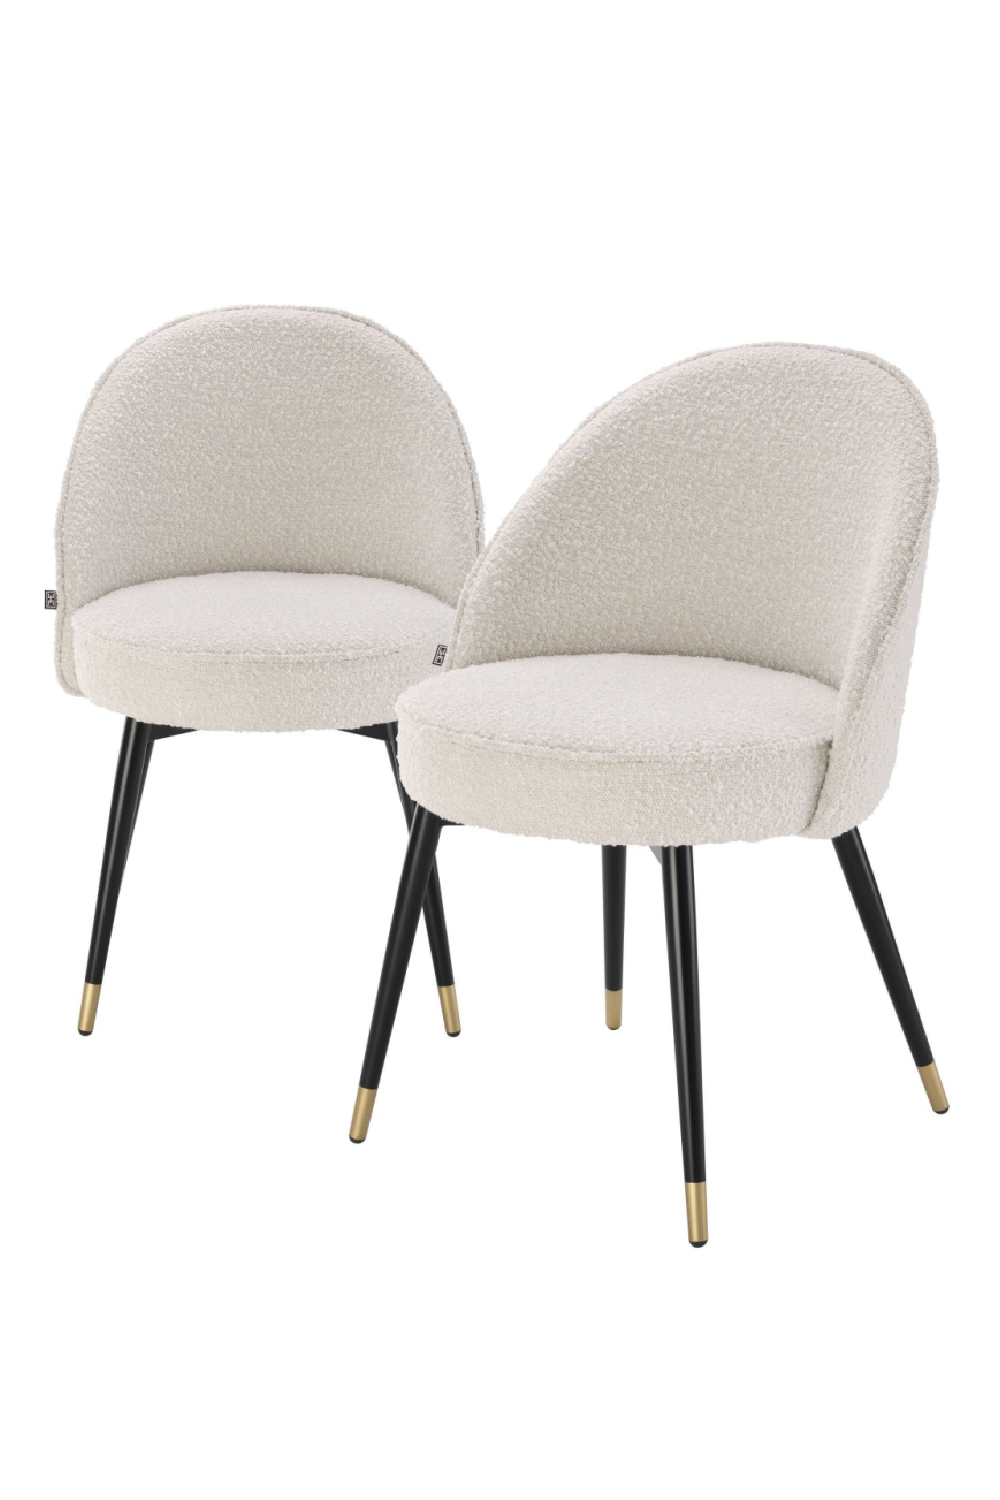 Bouclé Dining Chair Set Of 2 | Eichholtz Cooper | OROA Luxury Furniture